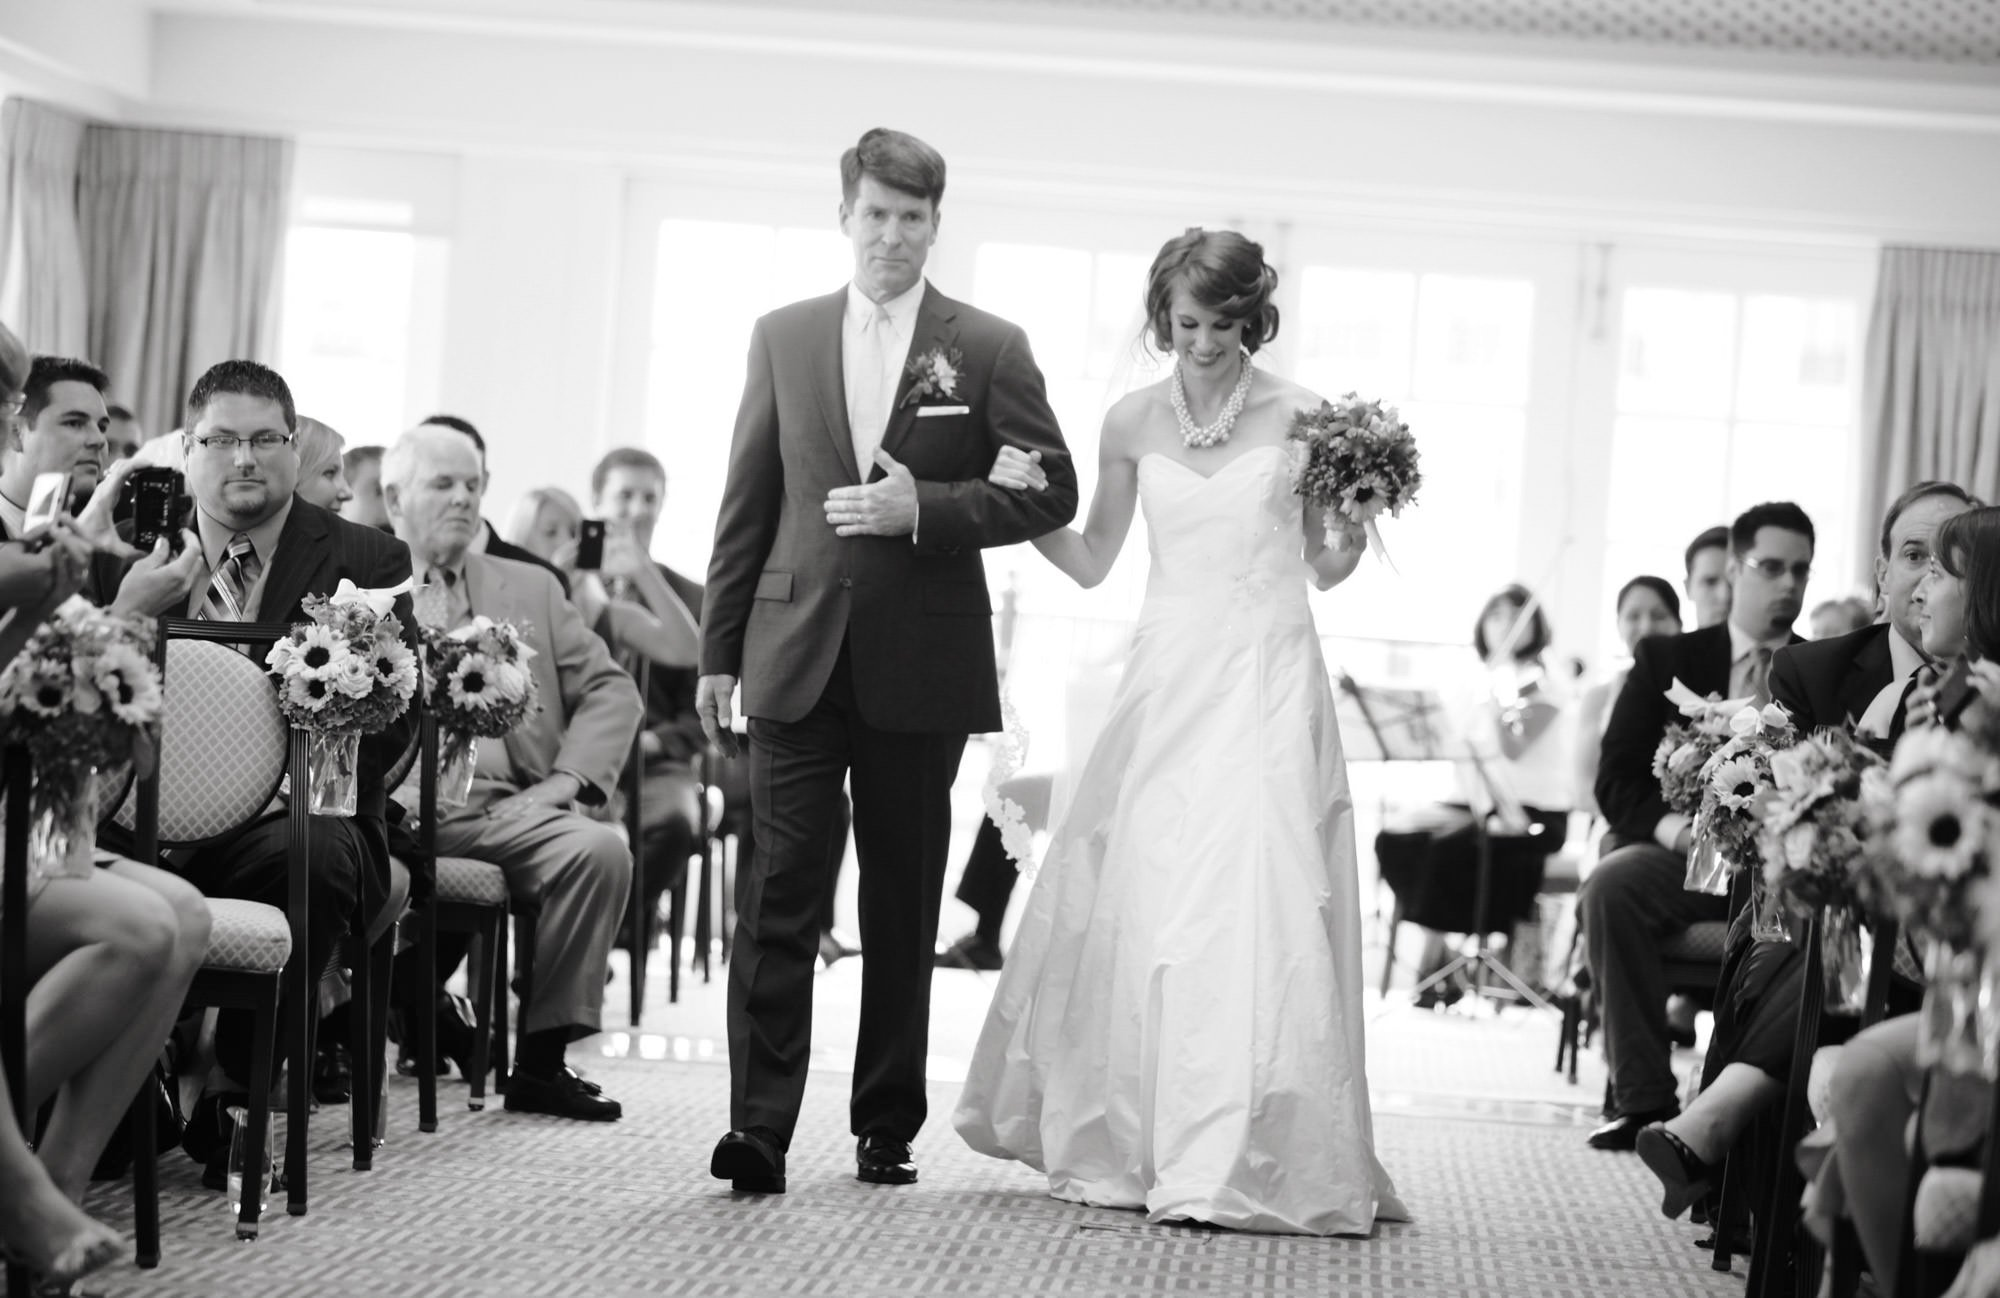 The bride is escorted down the aisle by her father during the ceremony at the Hay Adams hotel.